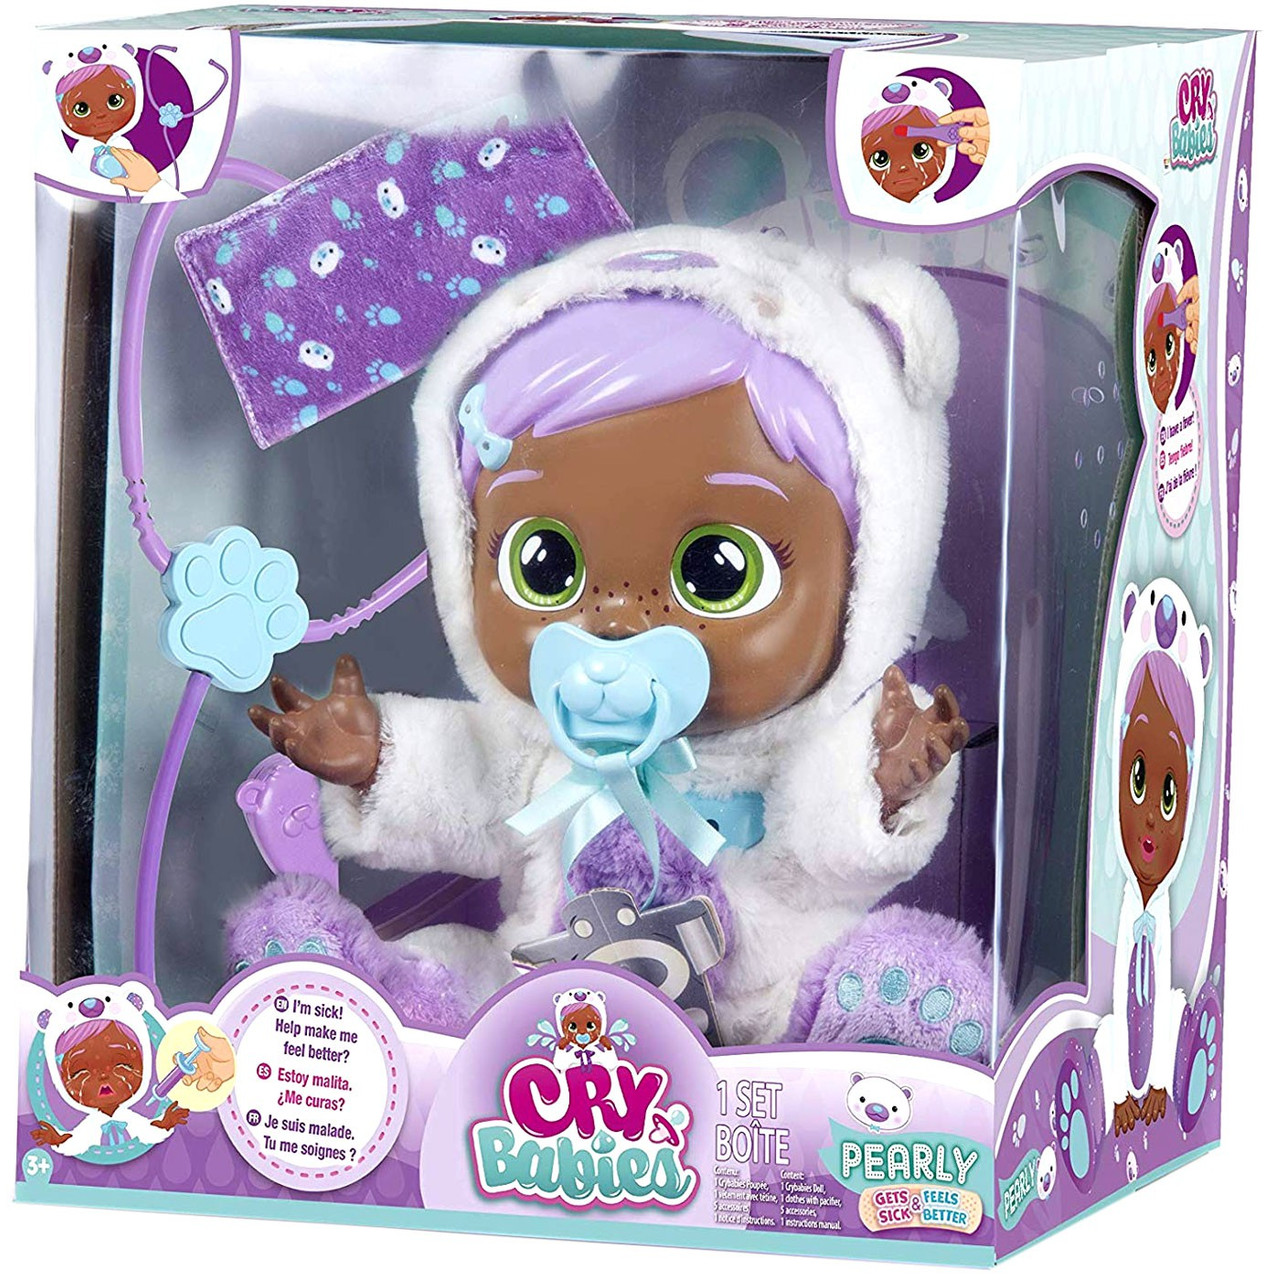 CRY BABIES Baby PEARLY Cries Real Tears Interactive Doll NEW